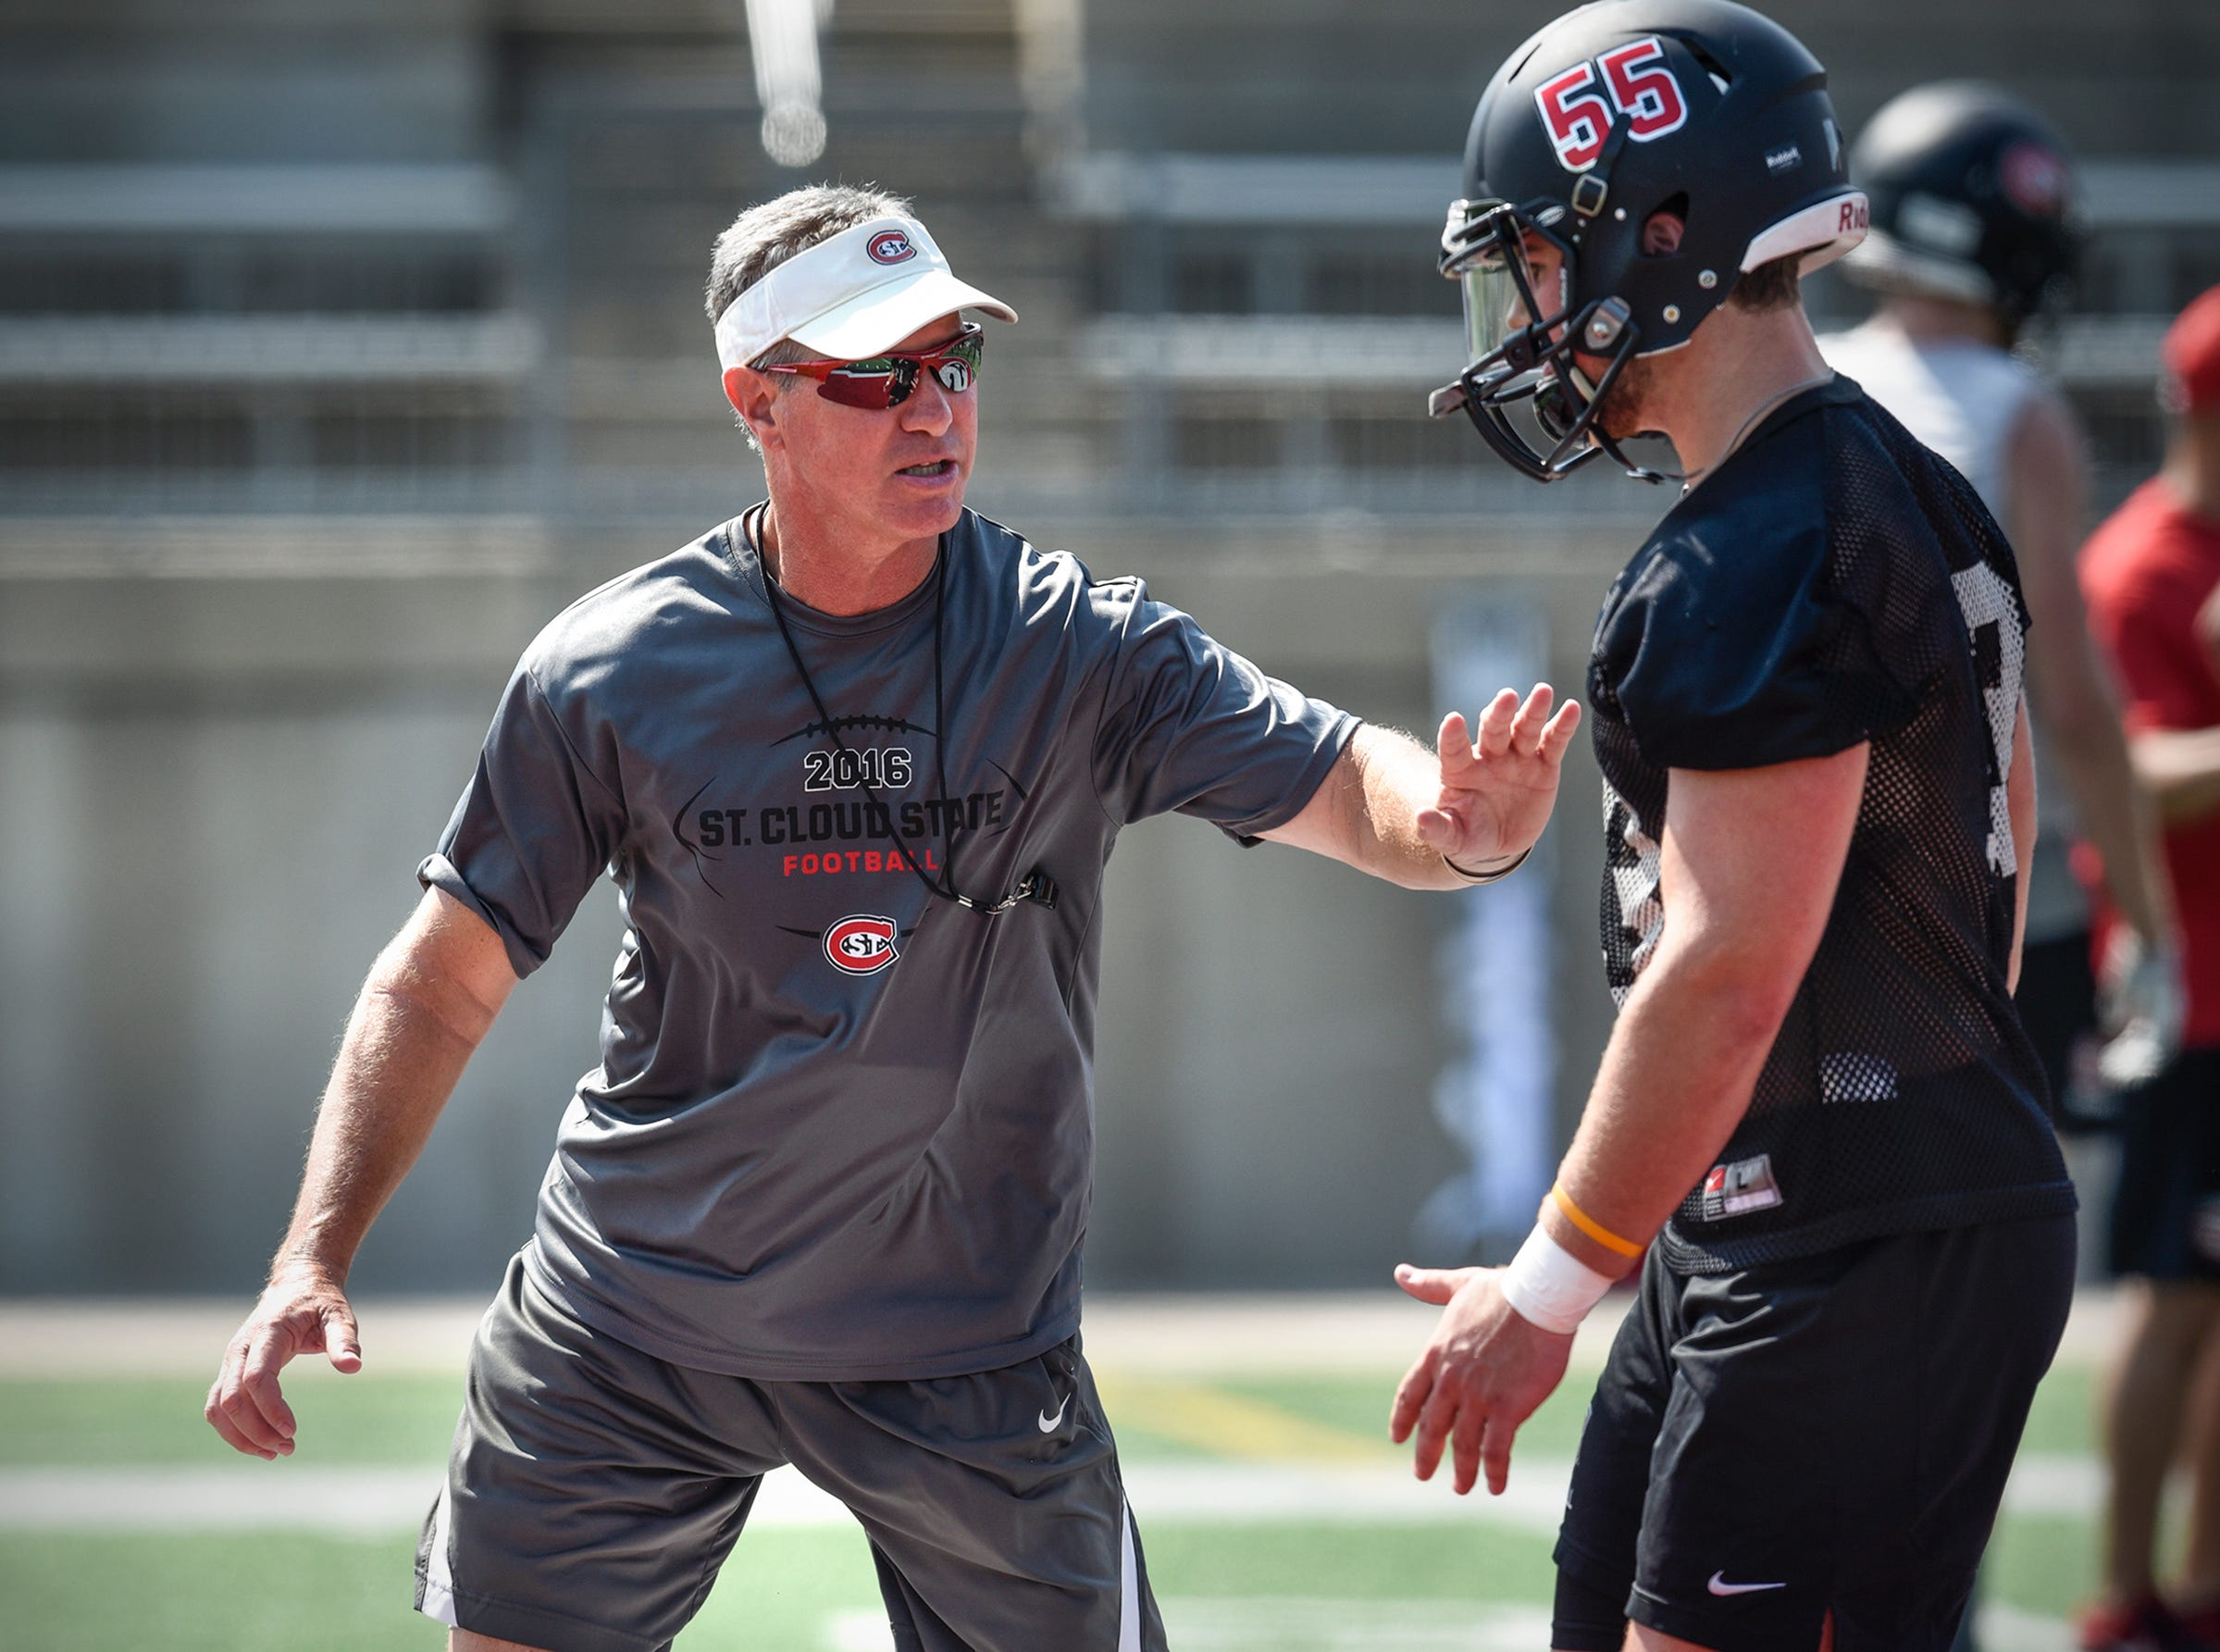 St. Cloud State head coach Scott Underwood talks with a player during practice Wednesday, Aug. 8, at Husky Stadium in St. Cloud.